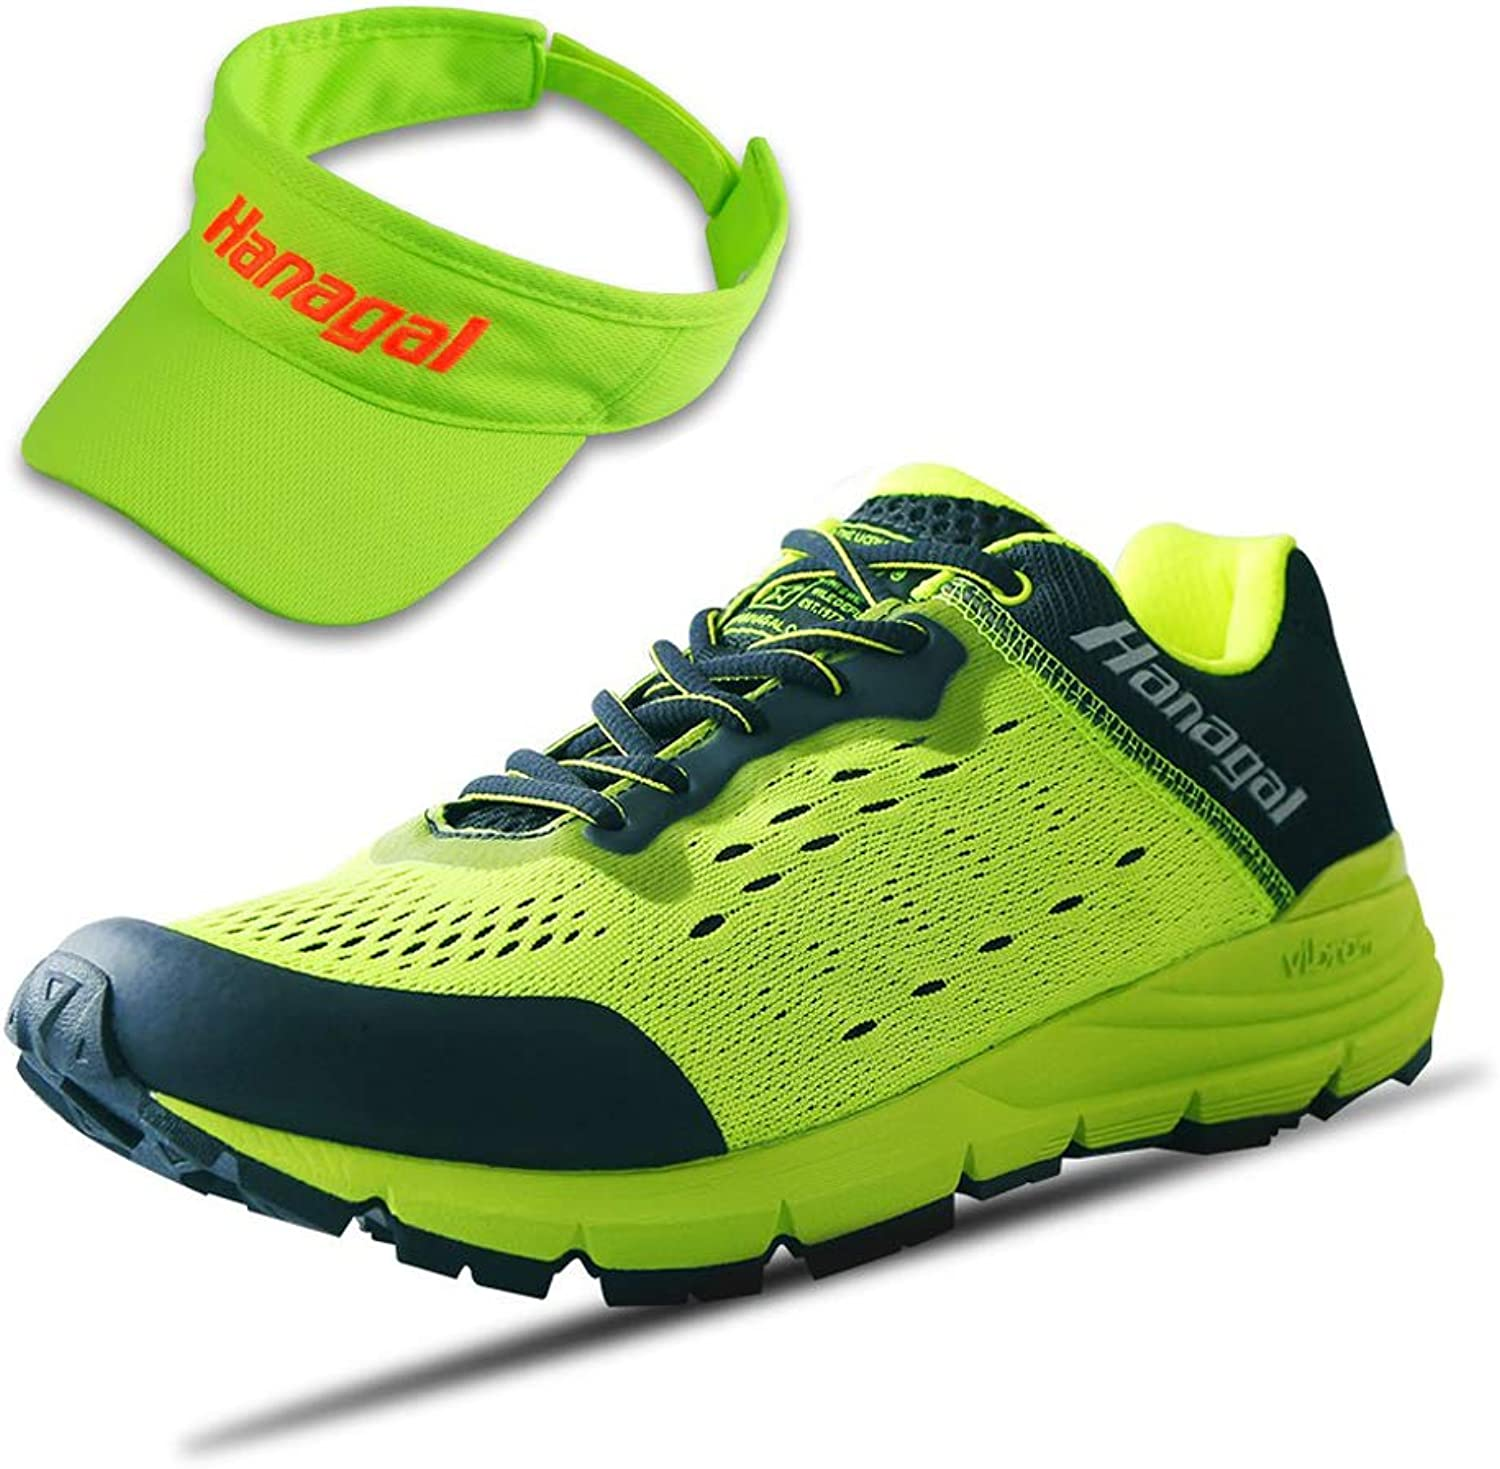 HANAGAL Men's Kenting Hiking shoes, Trail and Road Running shoes with Visor Hat Green Size  7 US